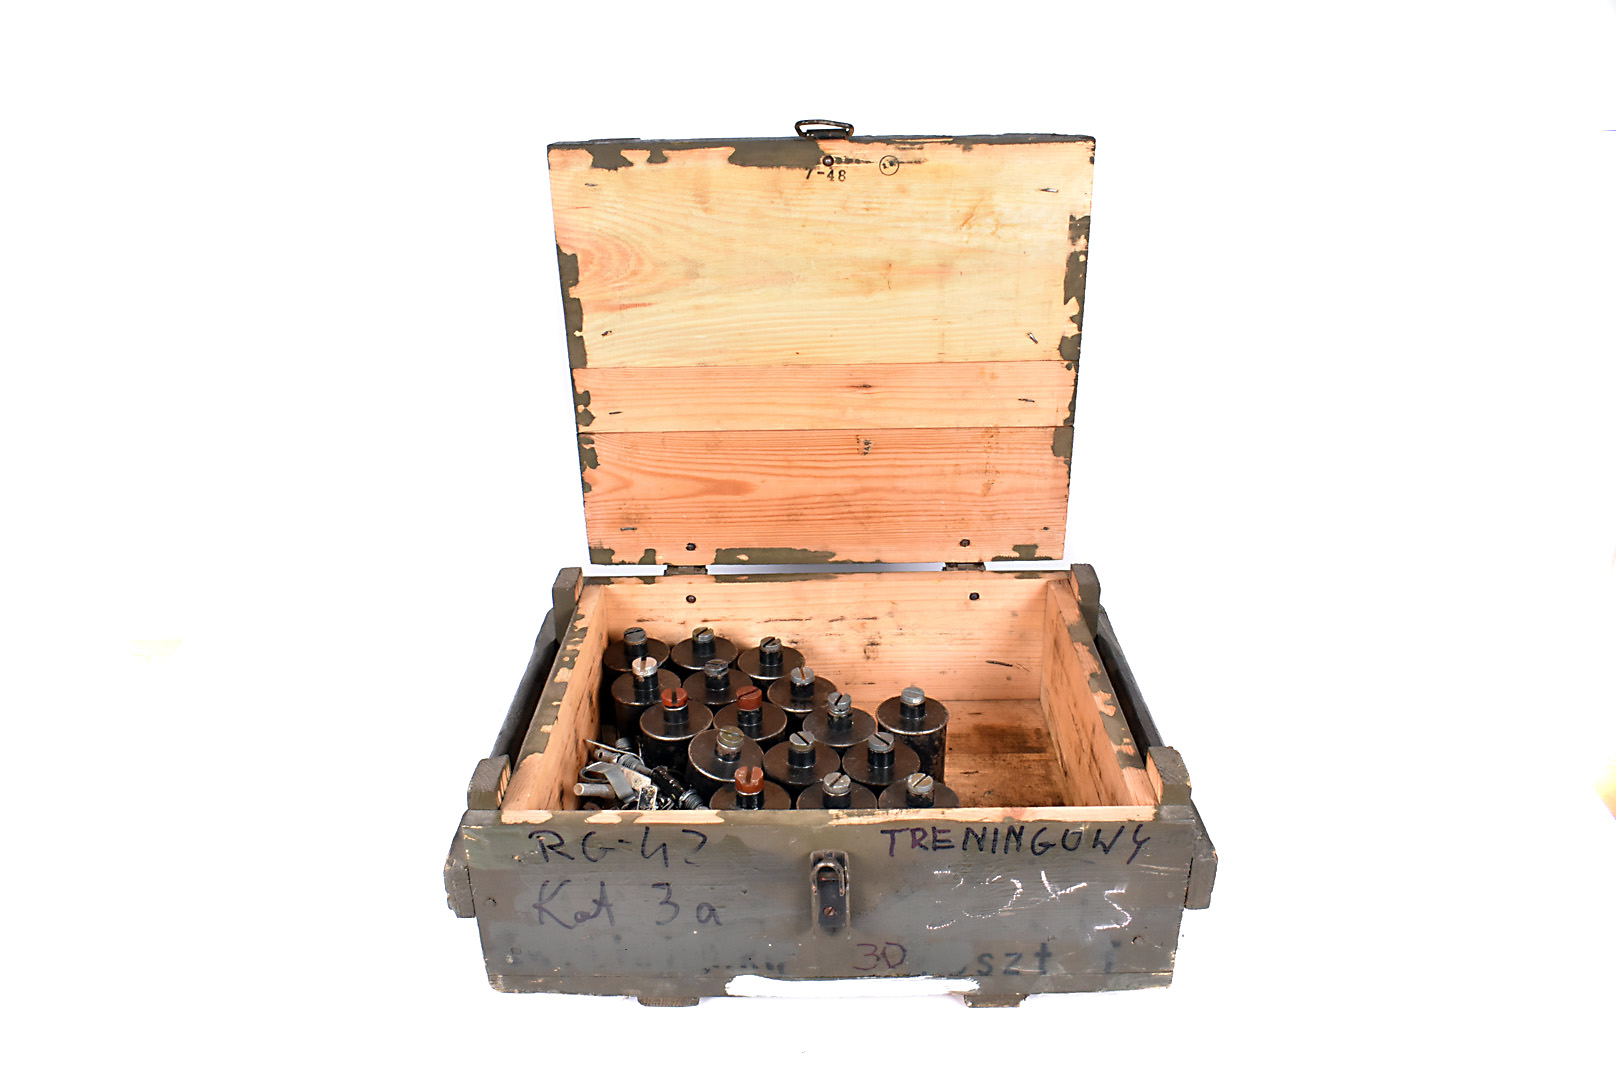 A crate of twenty inert RG42 grenades, complete with pins